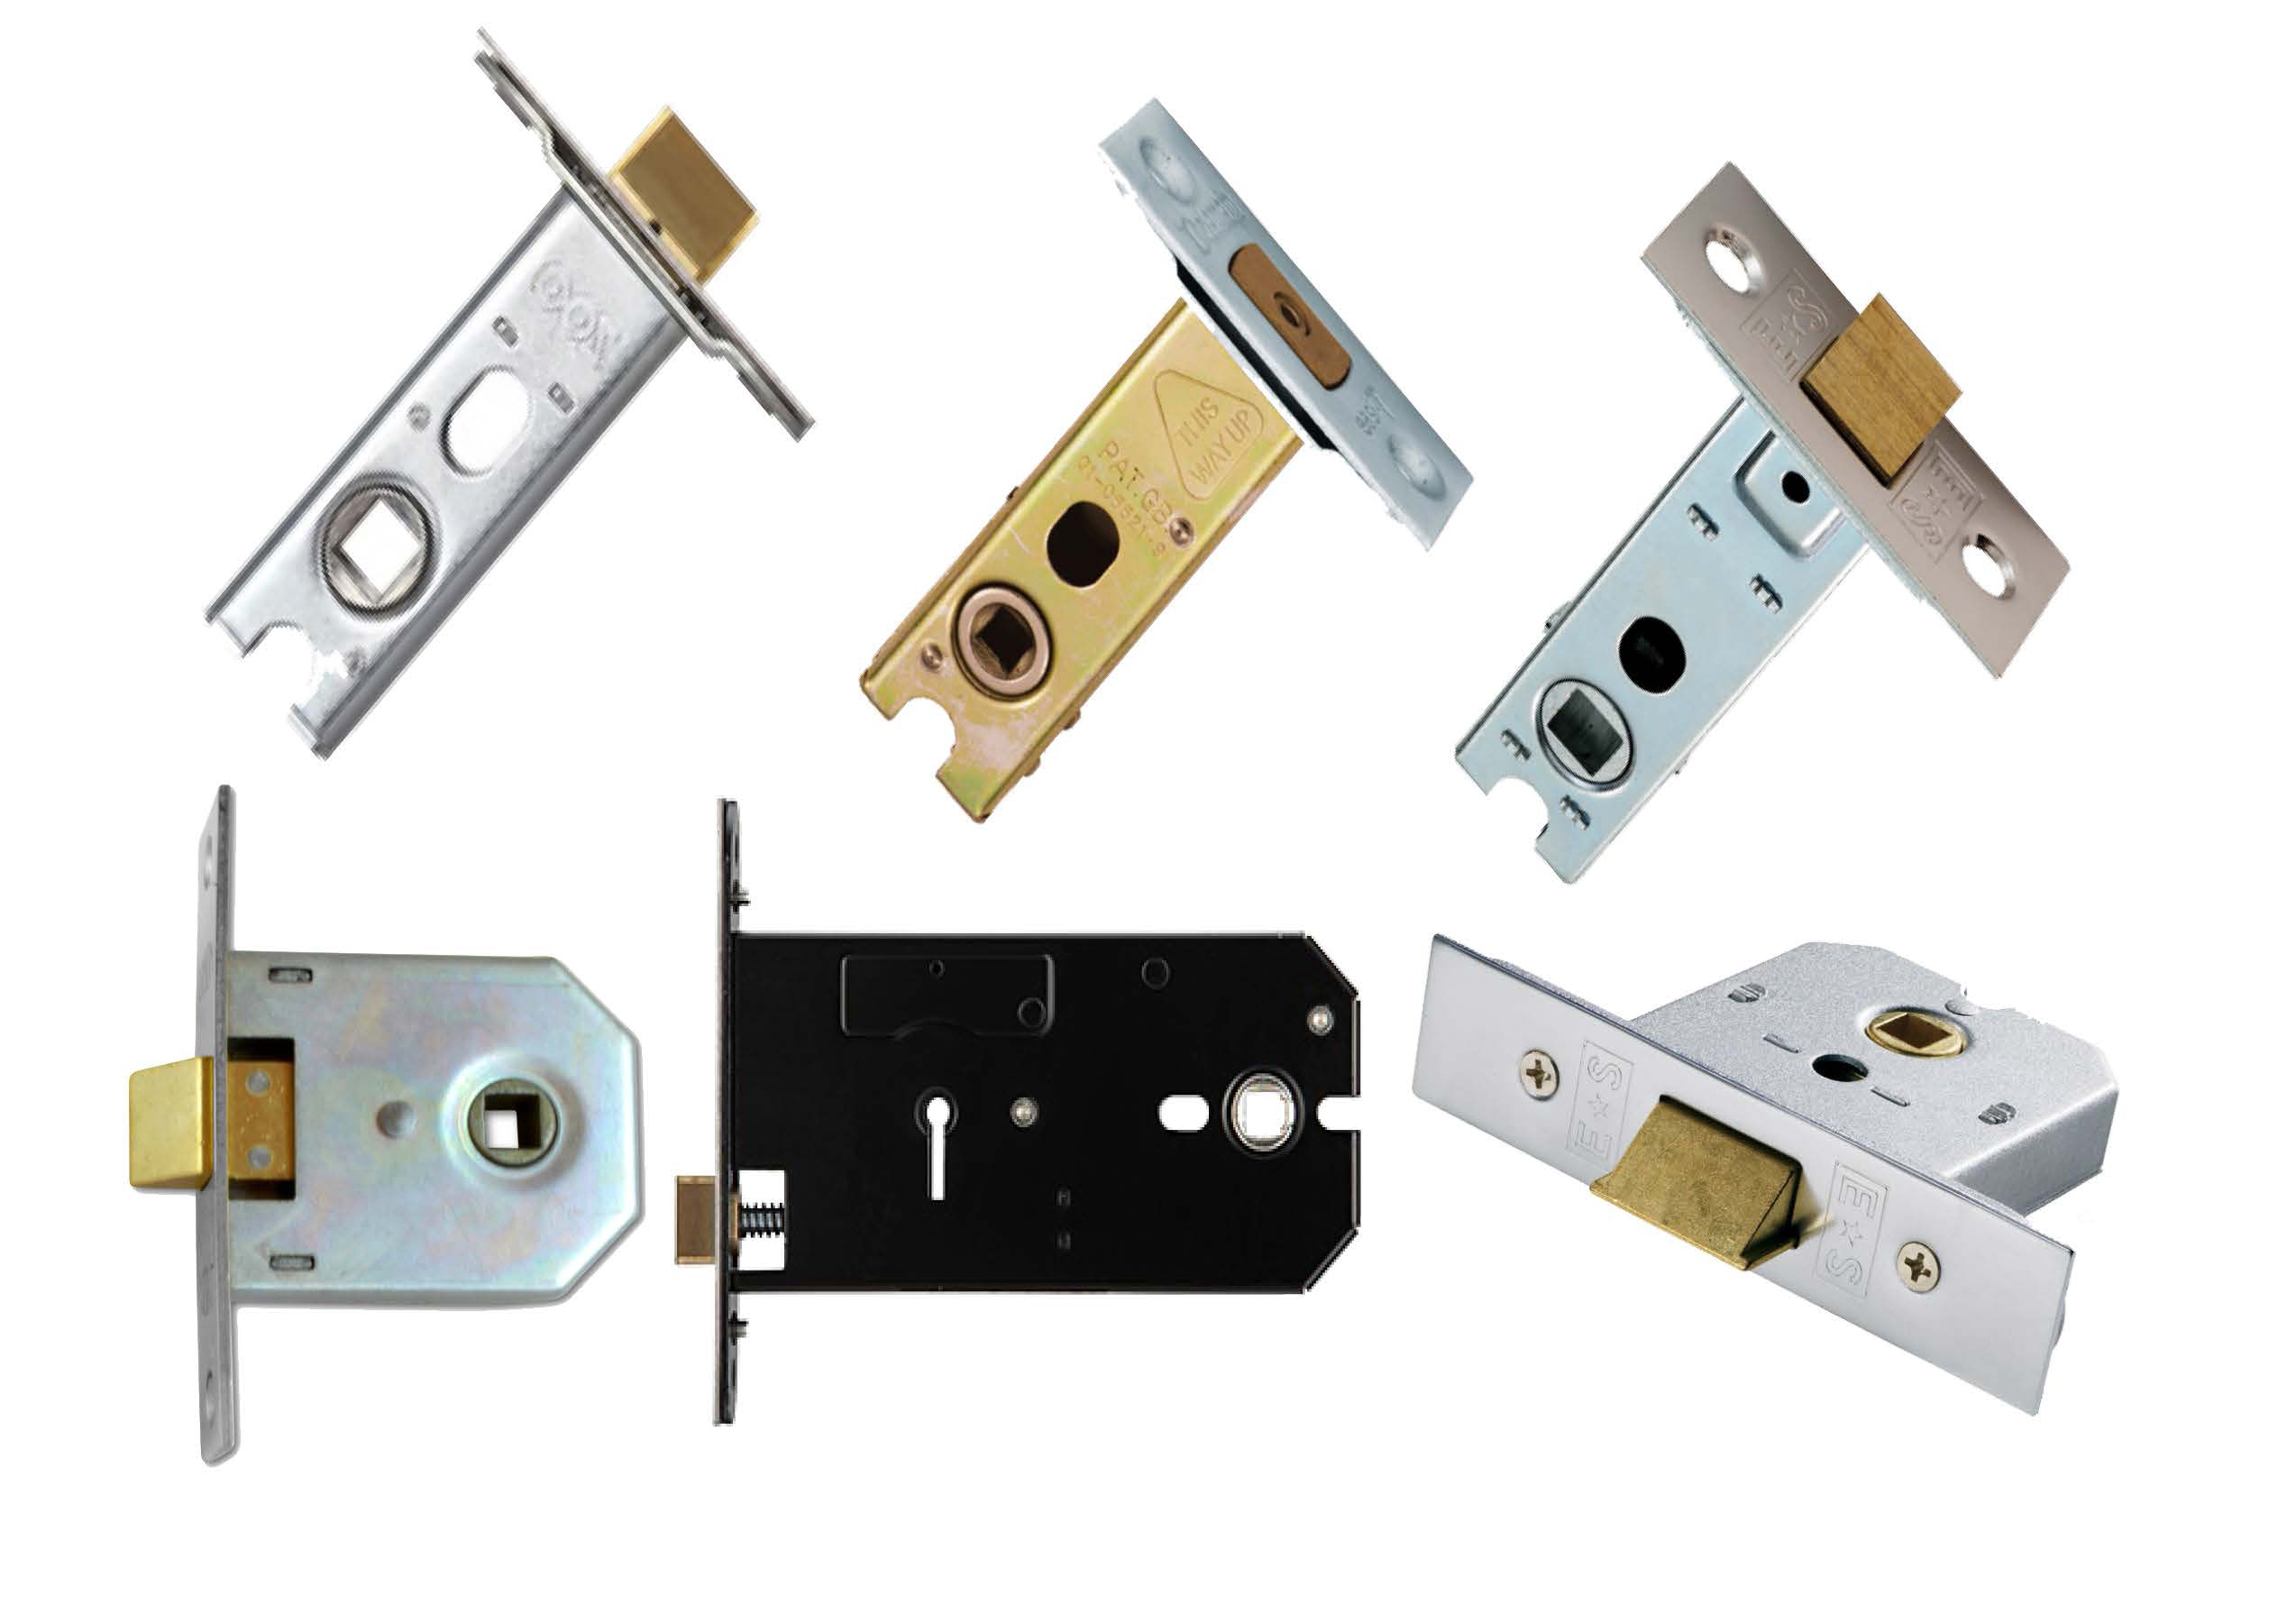 Mortice Latches, Tubular Latches & Deadbolts